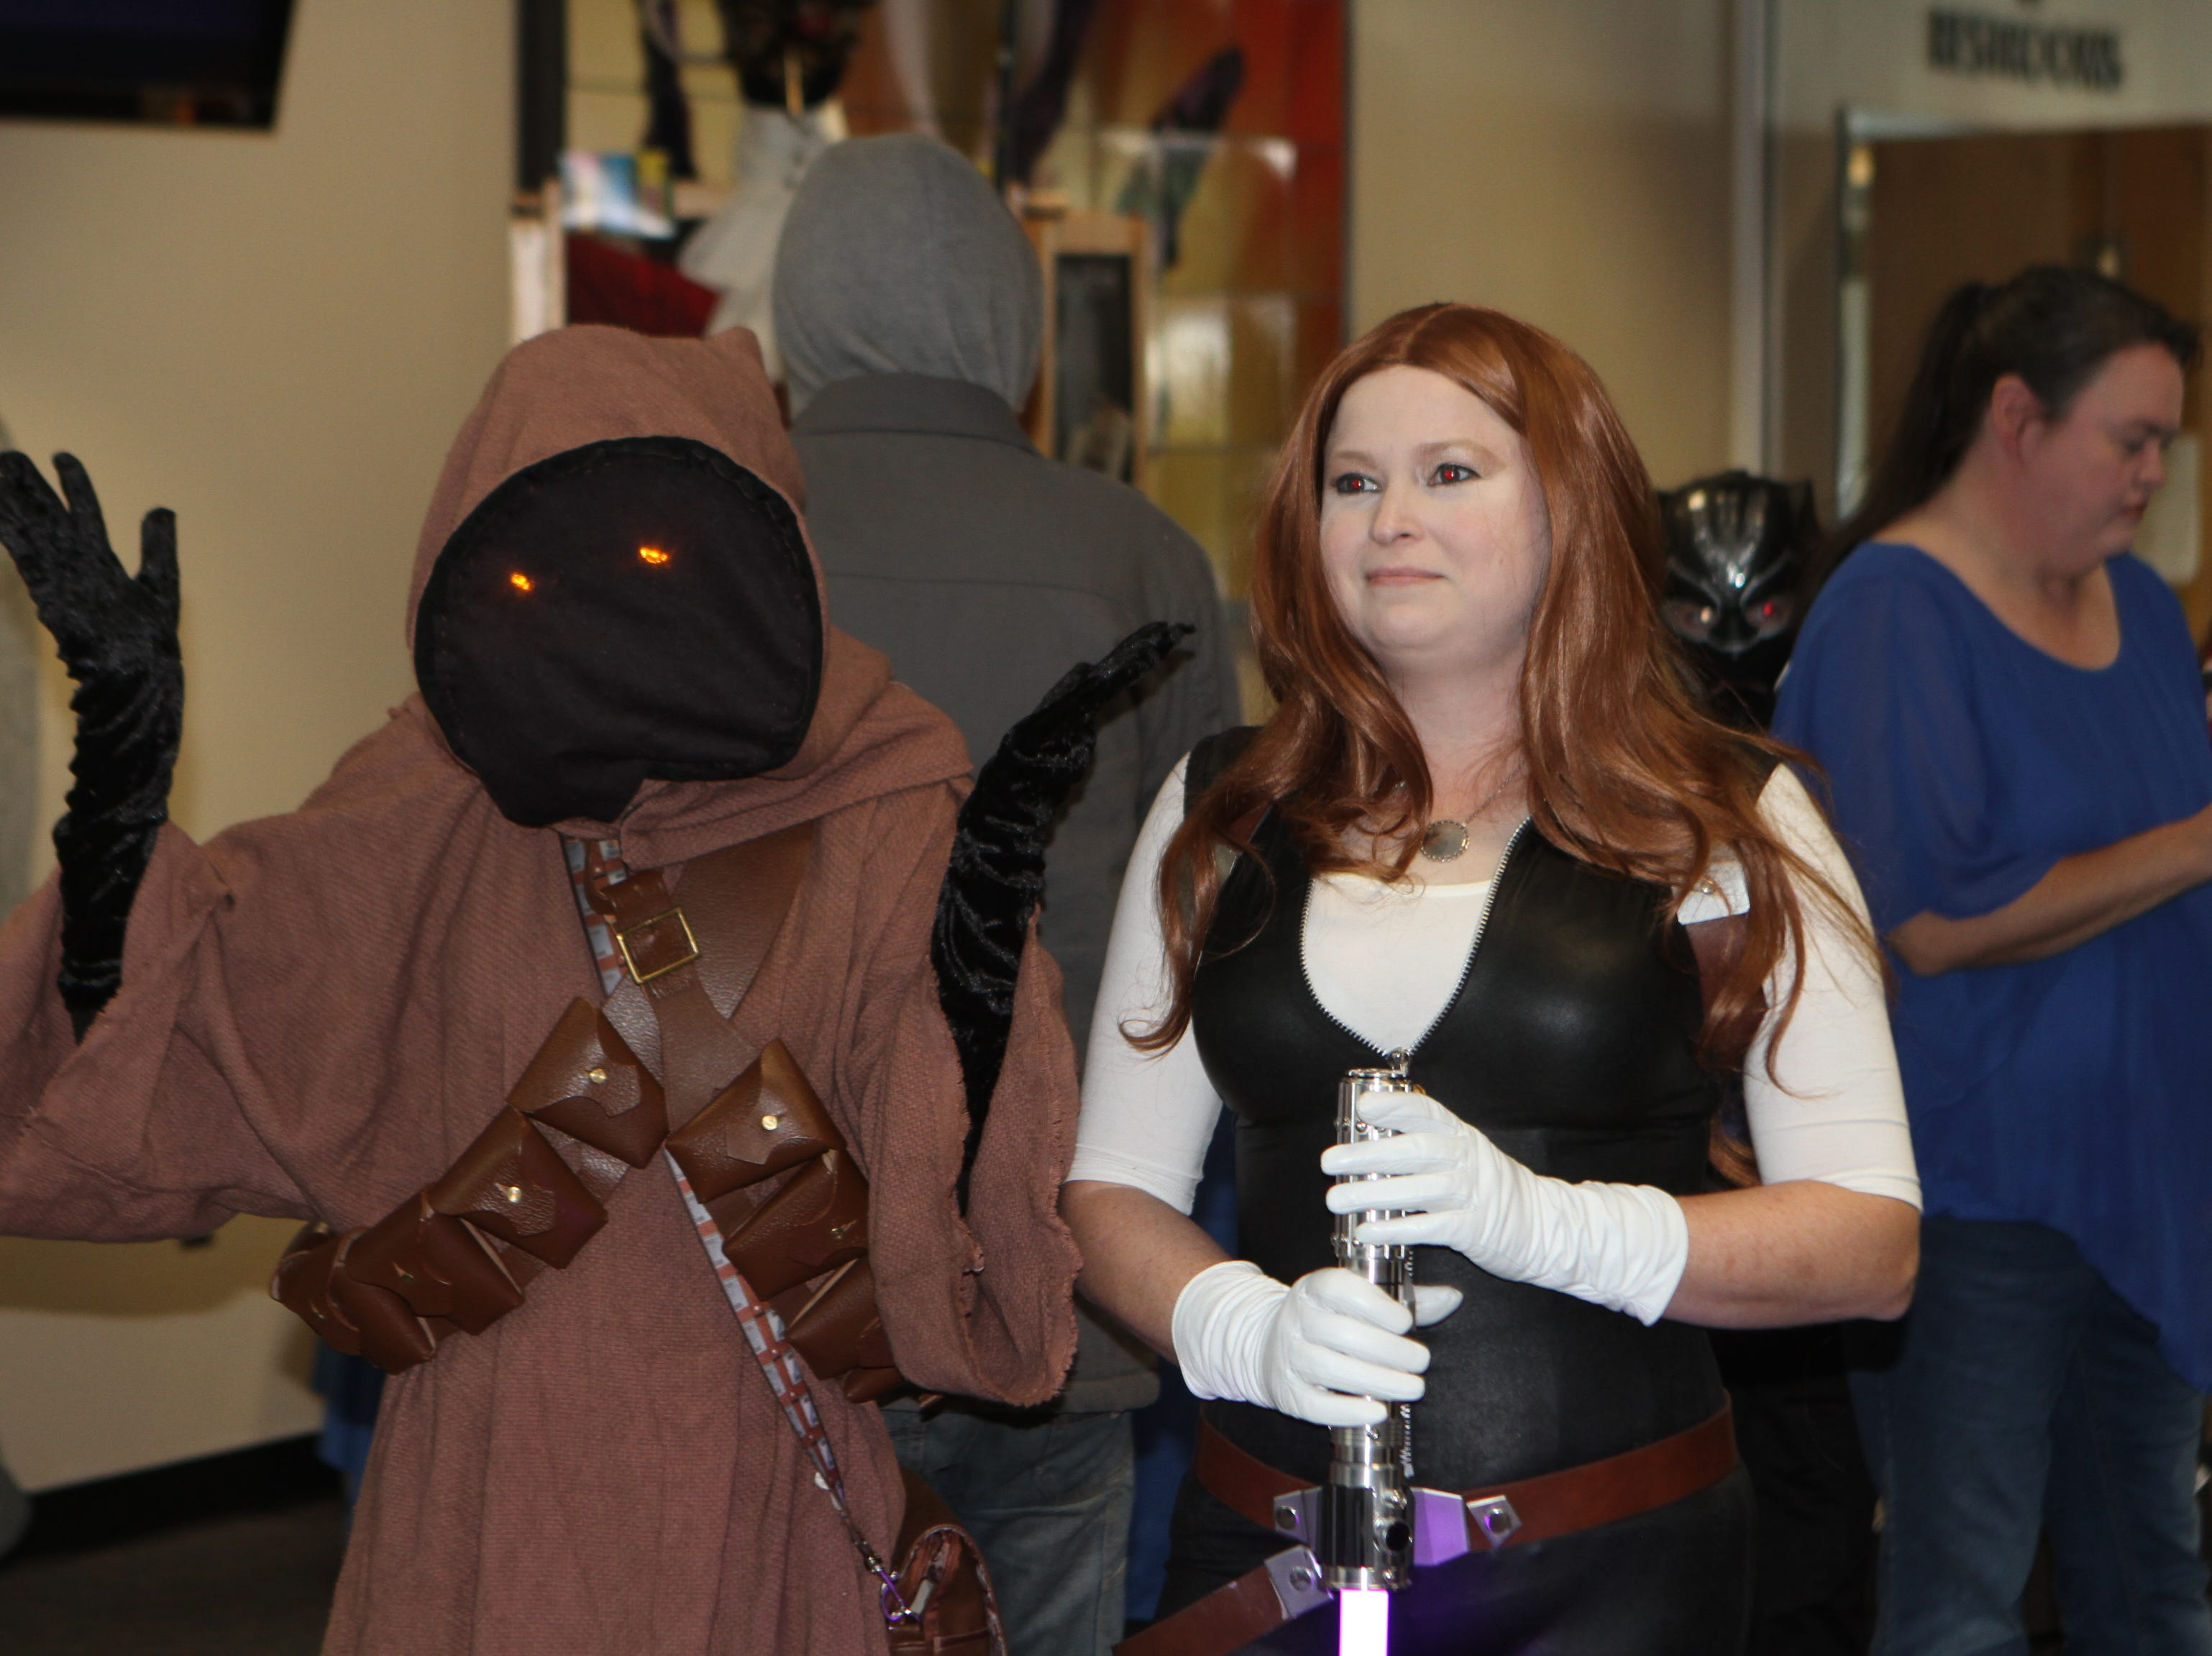 Hundreds came out to enjoy CMC Public Library's annual Sci-Fi Expo on Saturday, November 3, 2018.